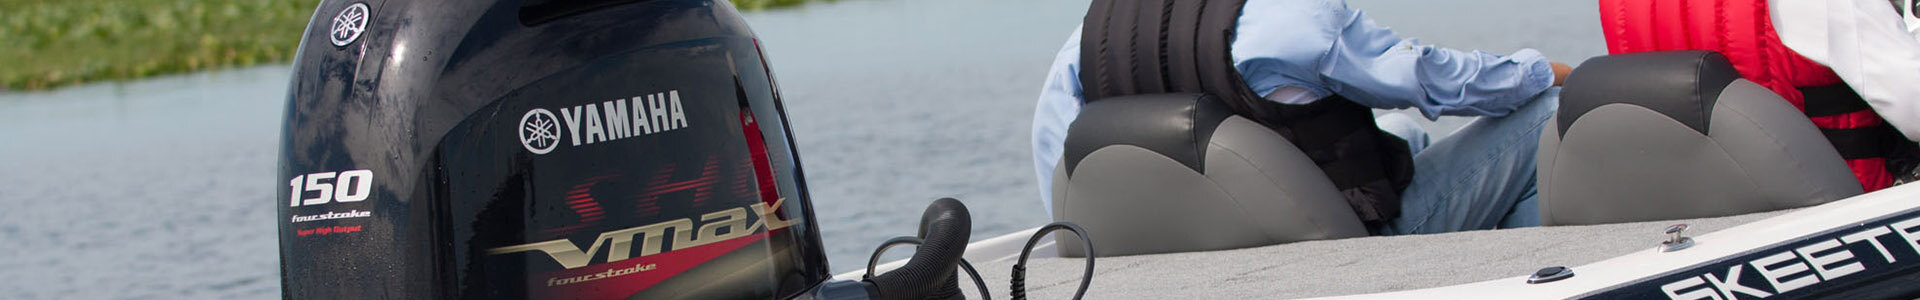 Yamaha Outboards Dealer - Northern Leisure Marine - Bobcaygeon ON